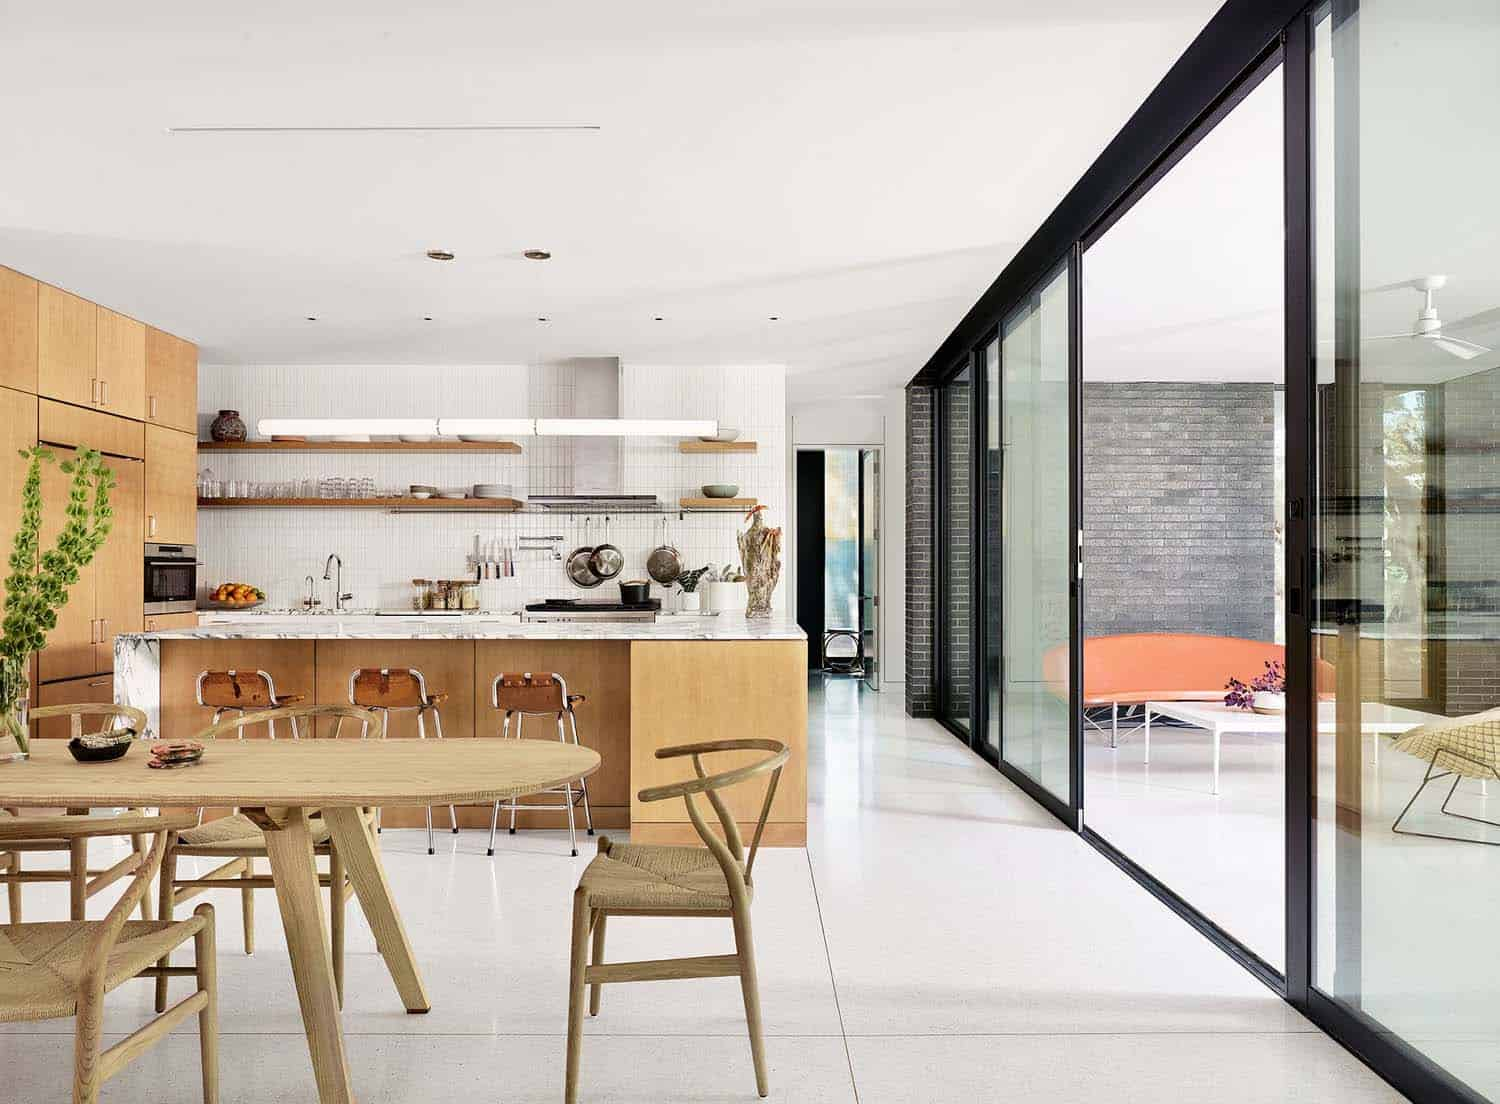 Above the kitchen features honed marble countertops and a handcrafted glazed ceramic tile backsplash the barstools are vintage by charlotte perriand